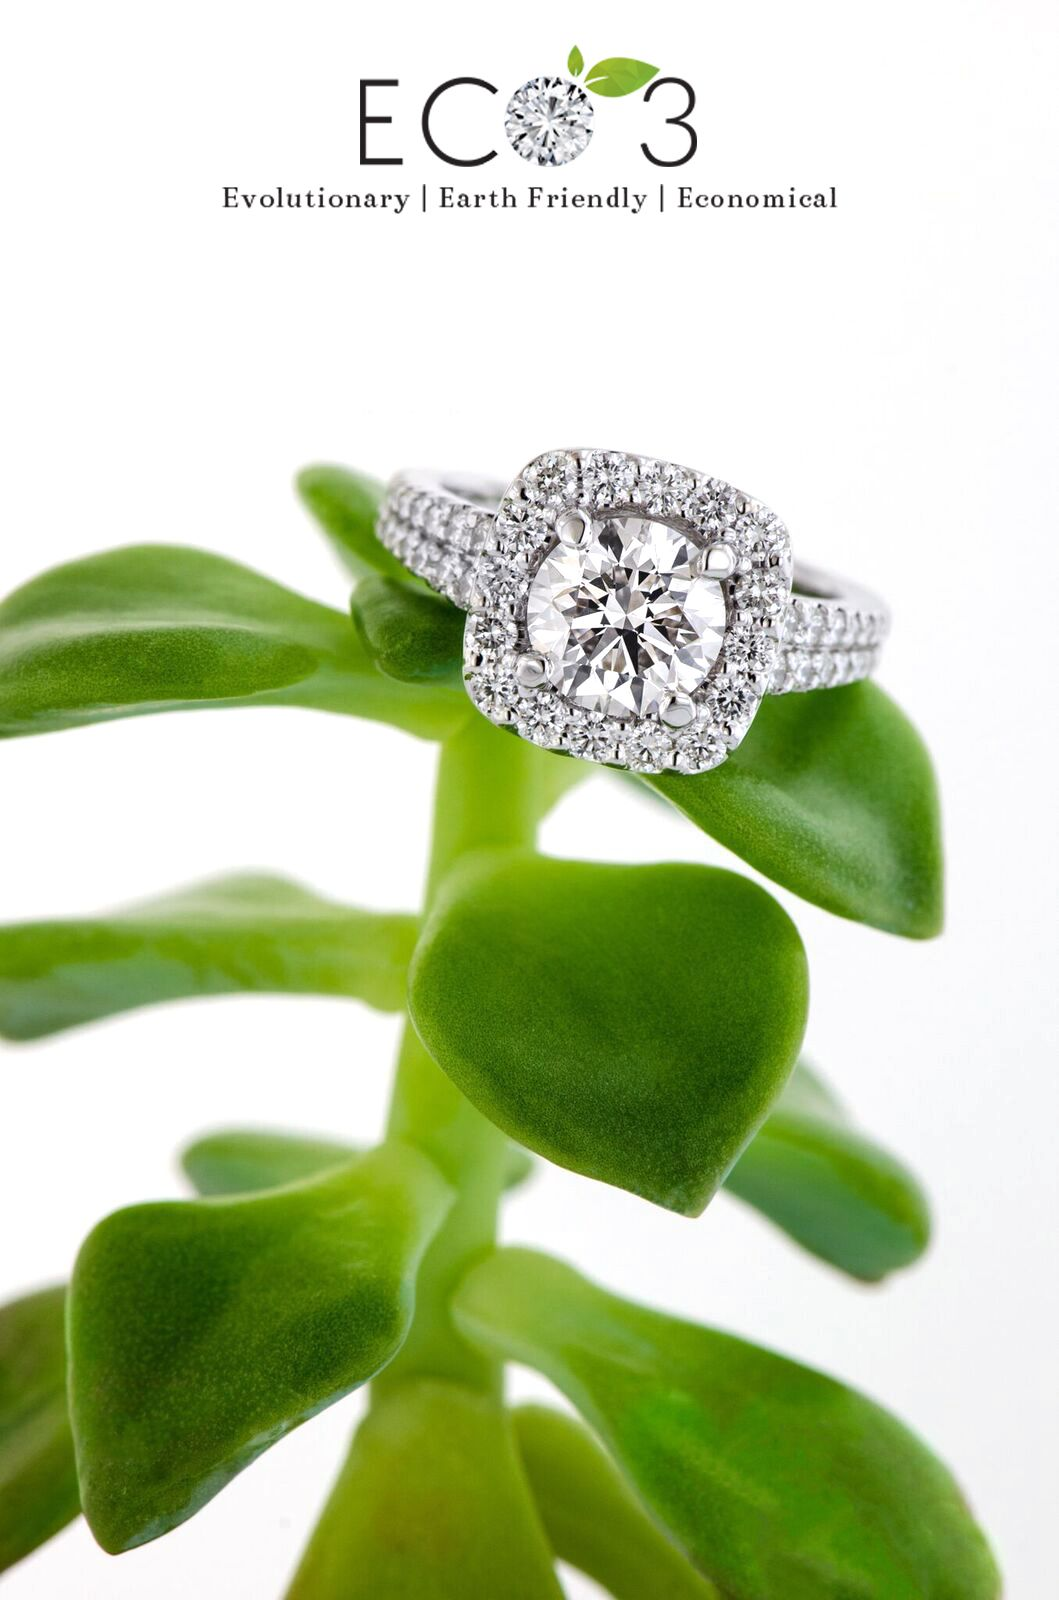 Curious about Lab Grown Diamonds? Read our latest blog